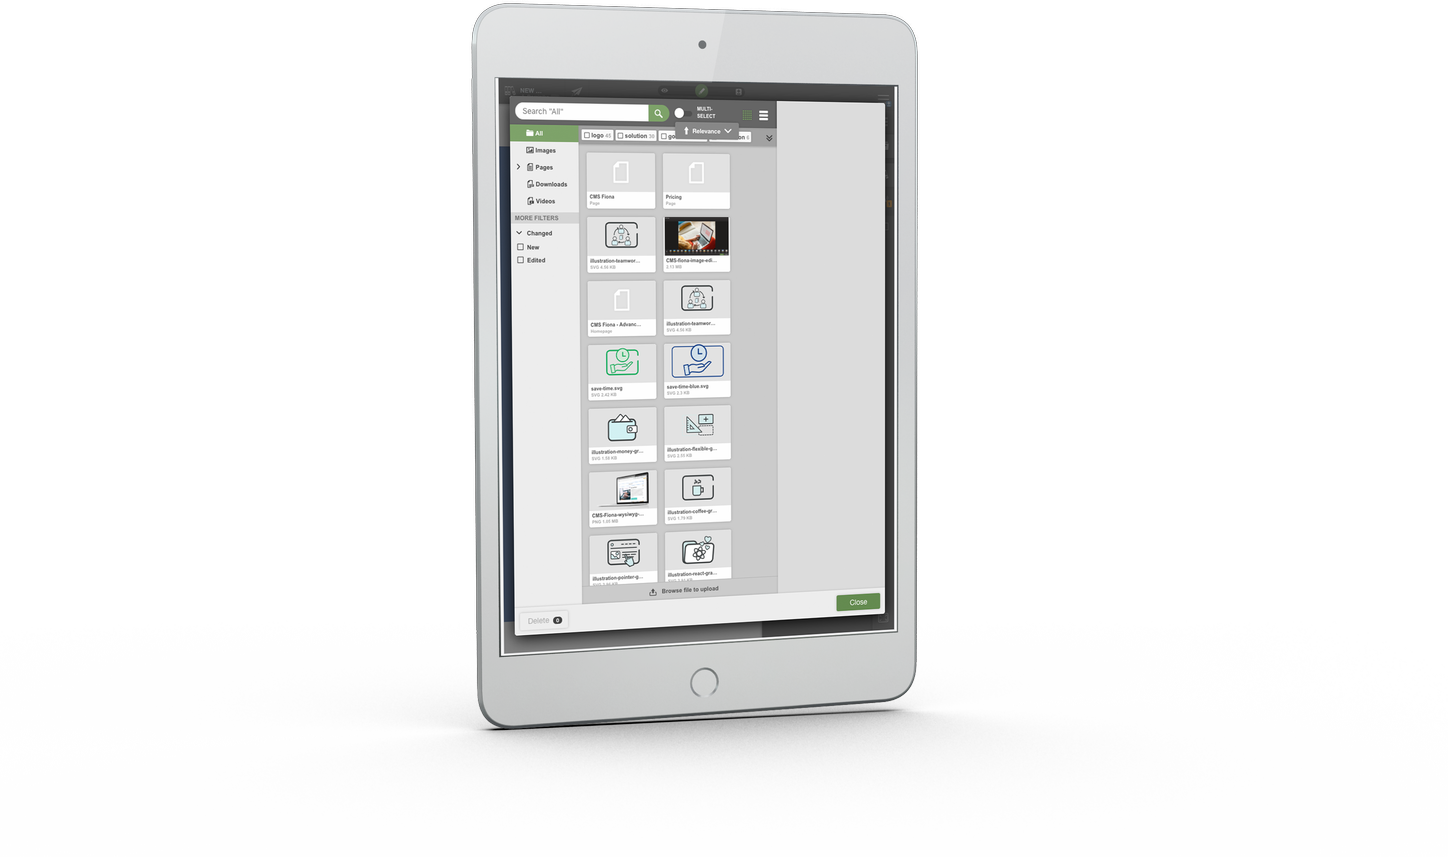 Tablet showing content management software user interface